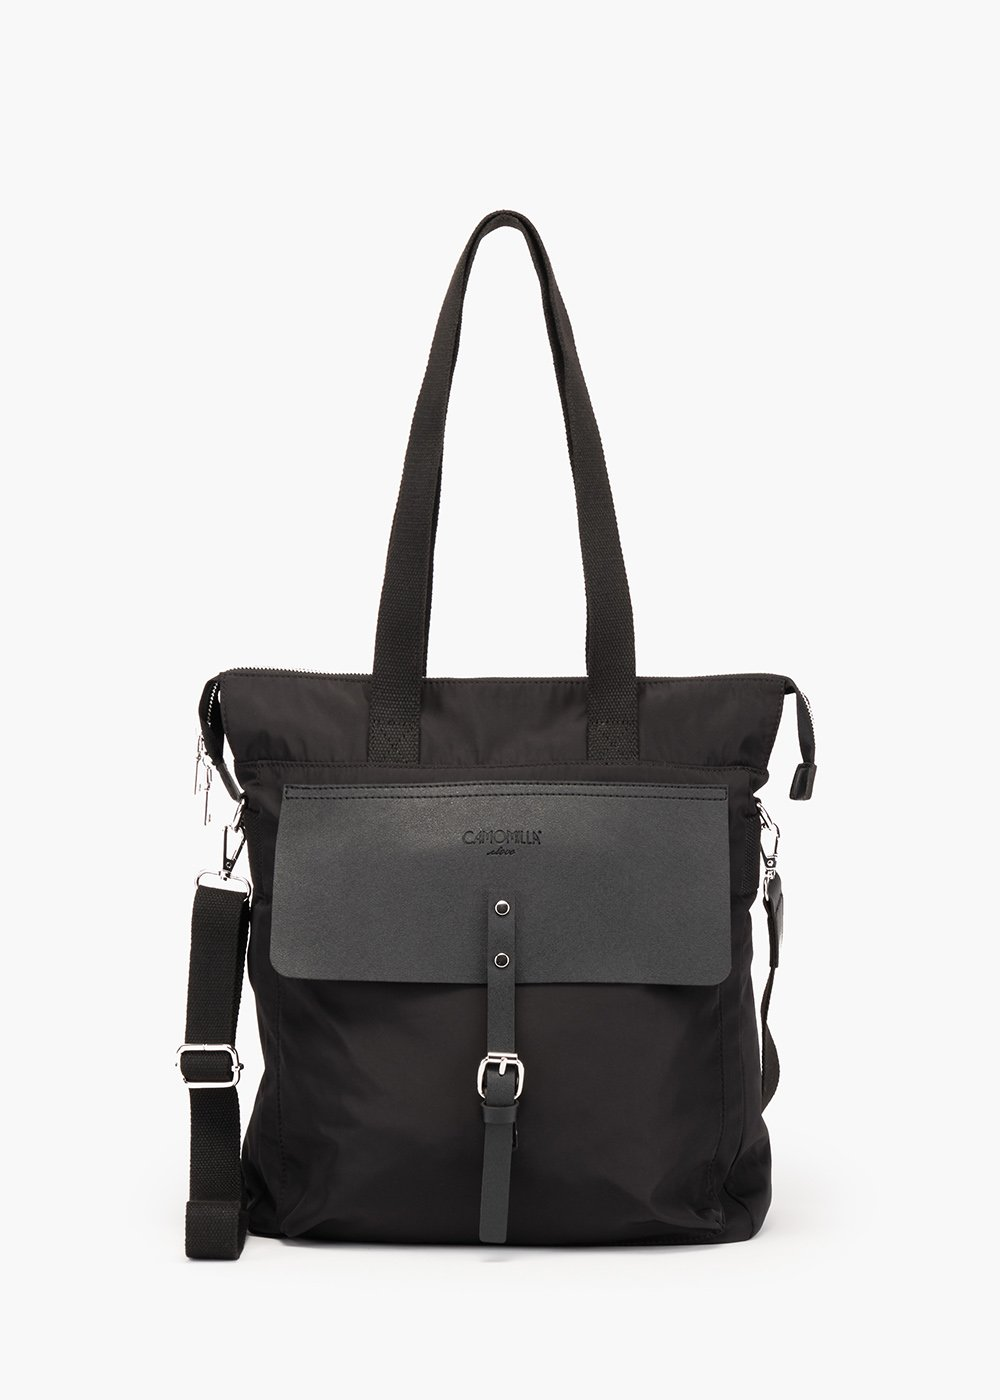 Bettie bag in technical fabric - Black - Woman